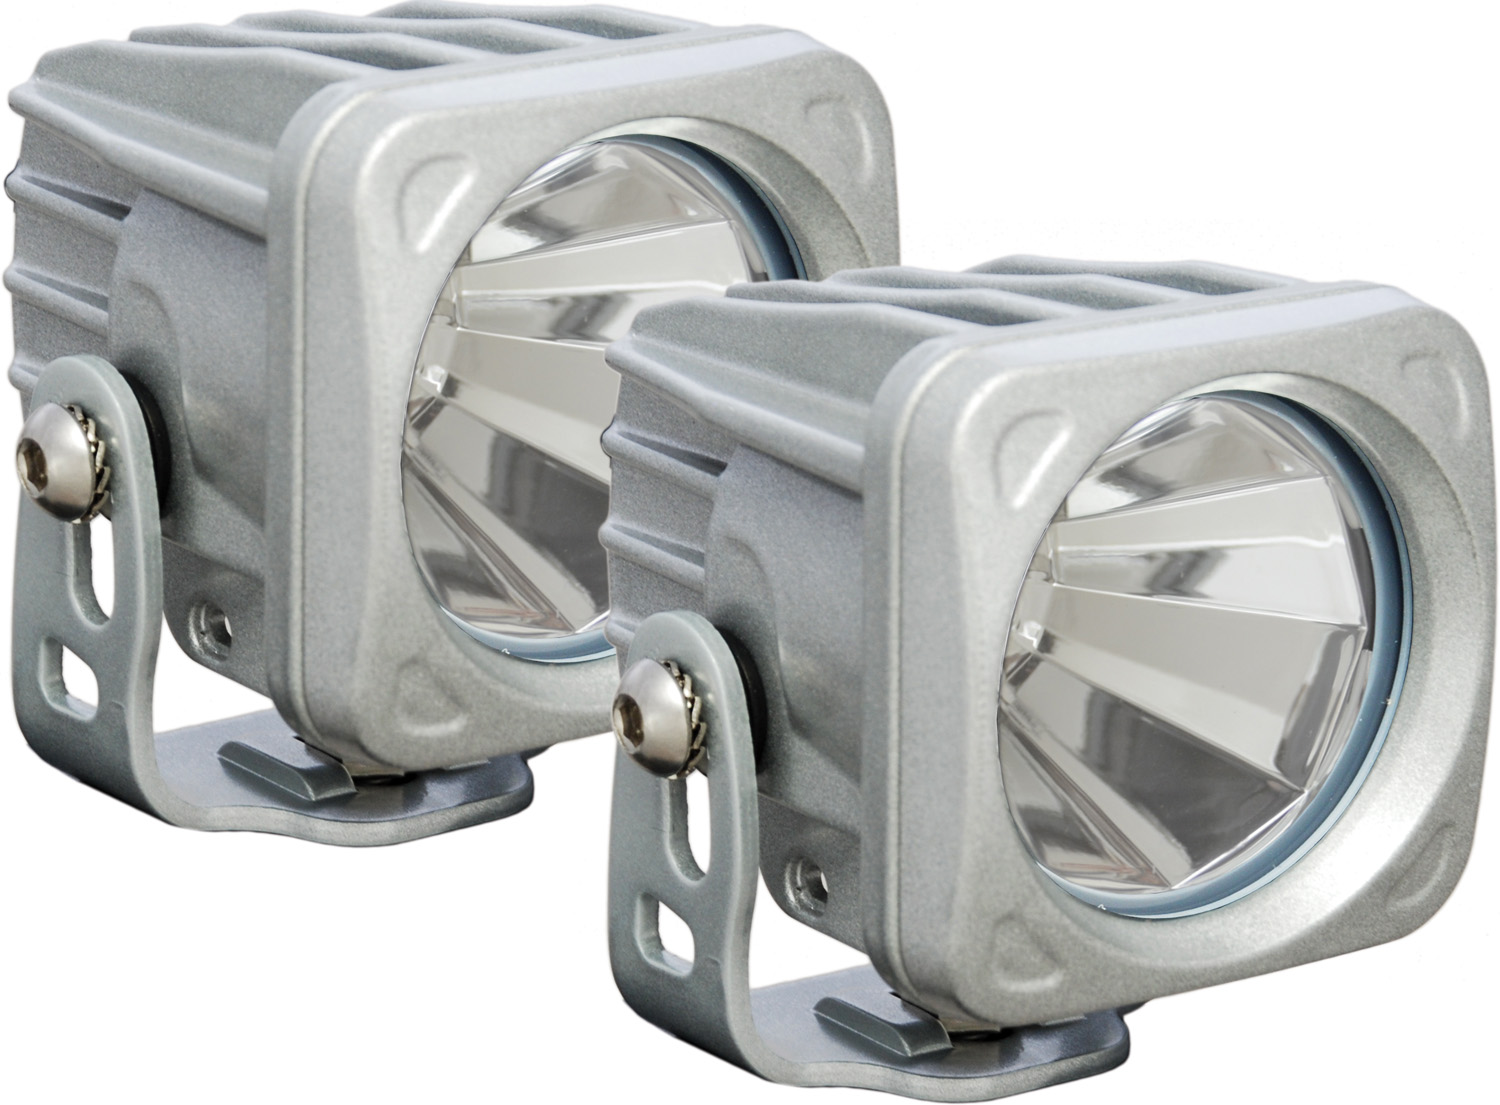 OPTIMUS SQUARE SILVER 1 10W LED 60° FLOOD KIT OF 2 LIGHTS